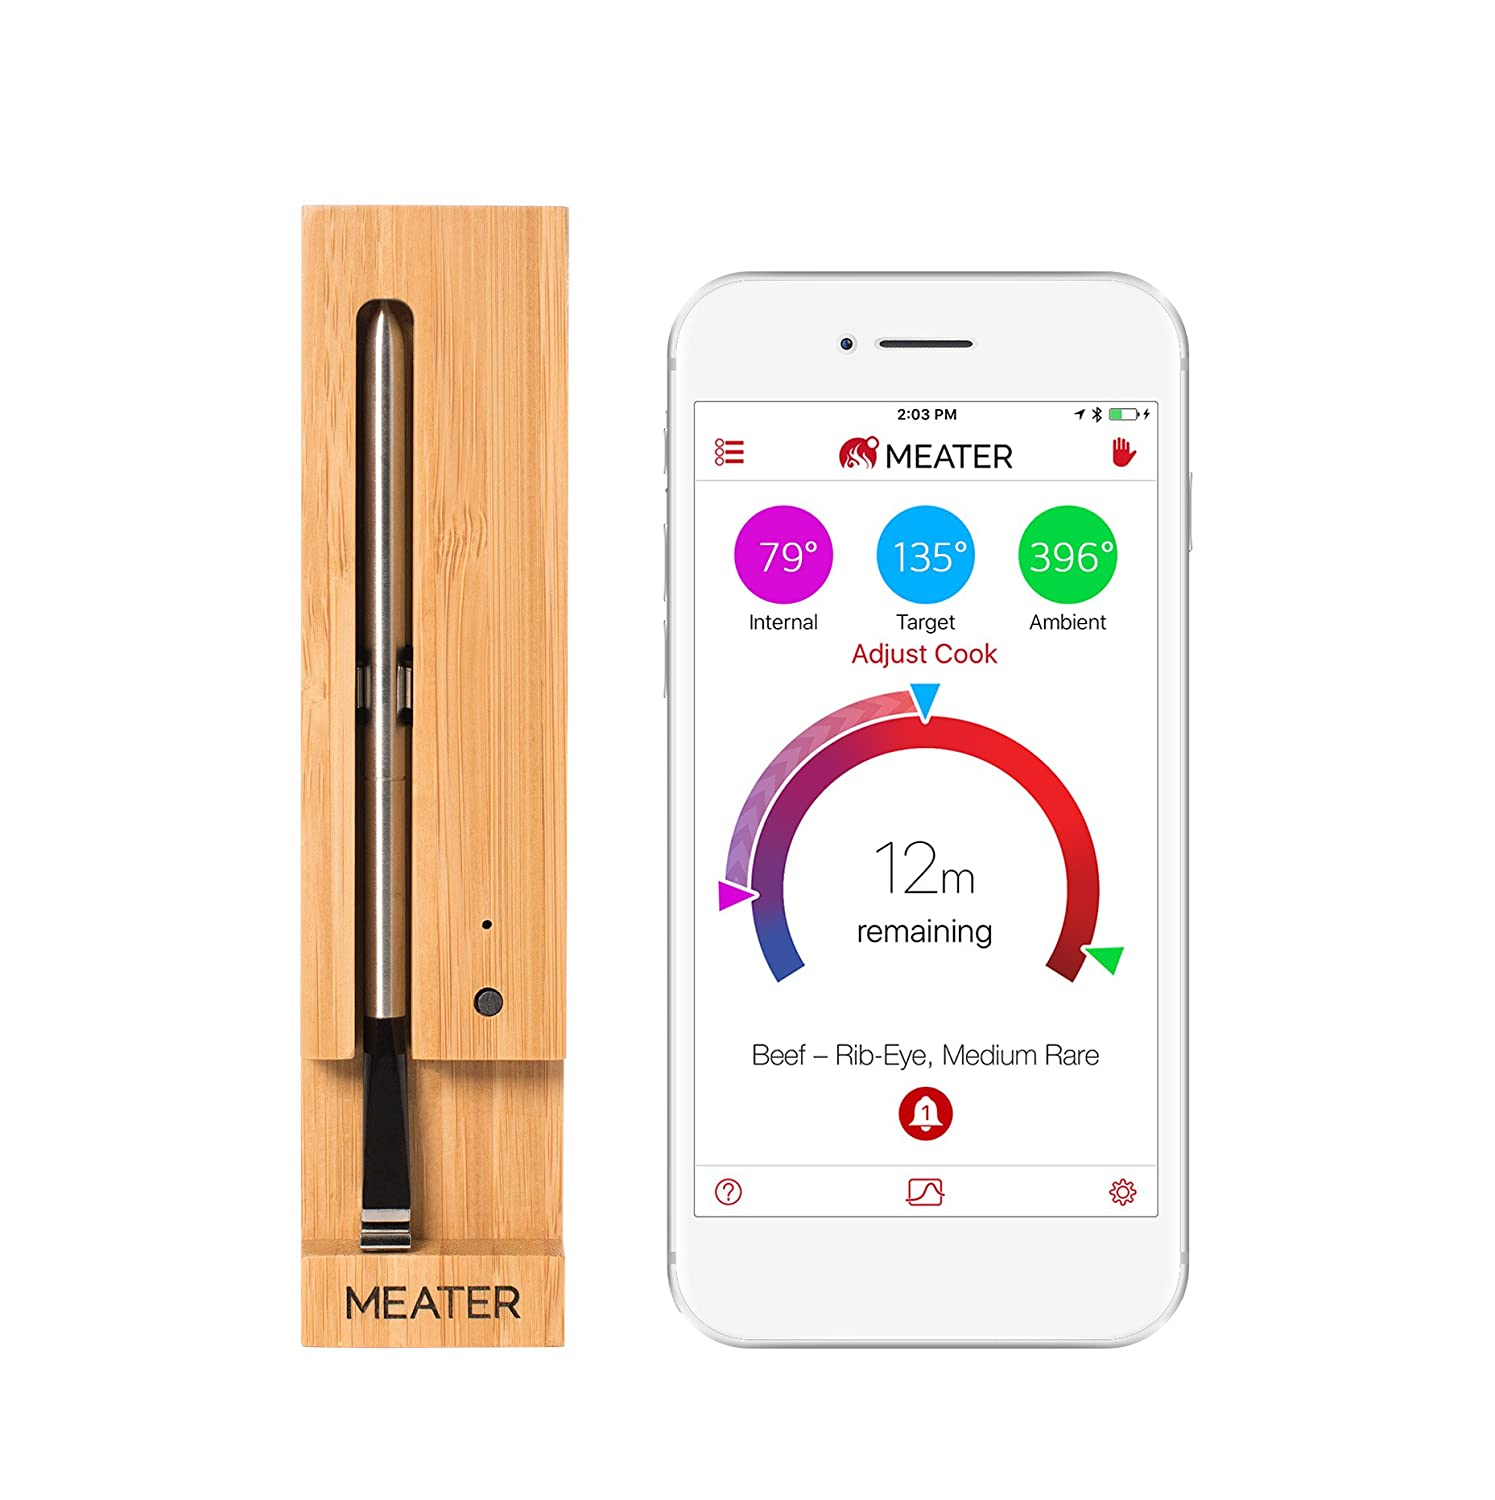 MEATER | The Original True Wireless Smart Meat Thermometer for the Oven Grill Kitchen BBQ Smoker Rotisserie with Bluetooth and WiFi Digital Connectivity Apption Labs OSC-MT-ME01